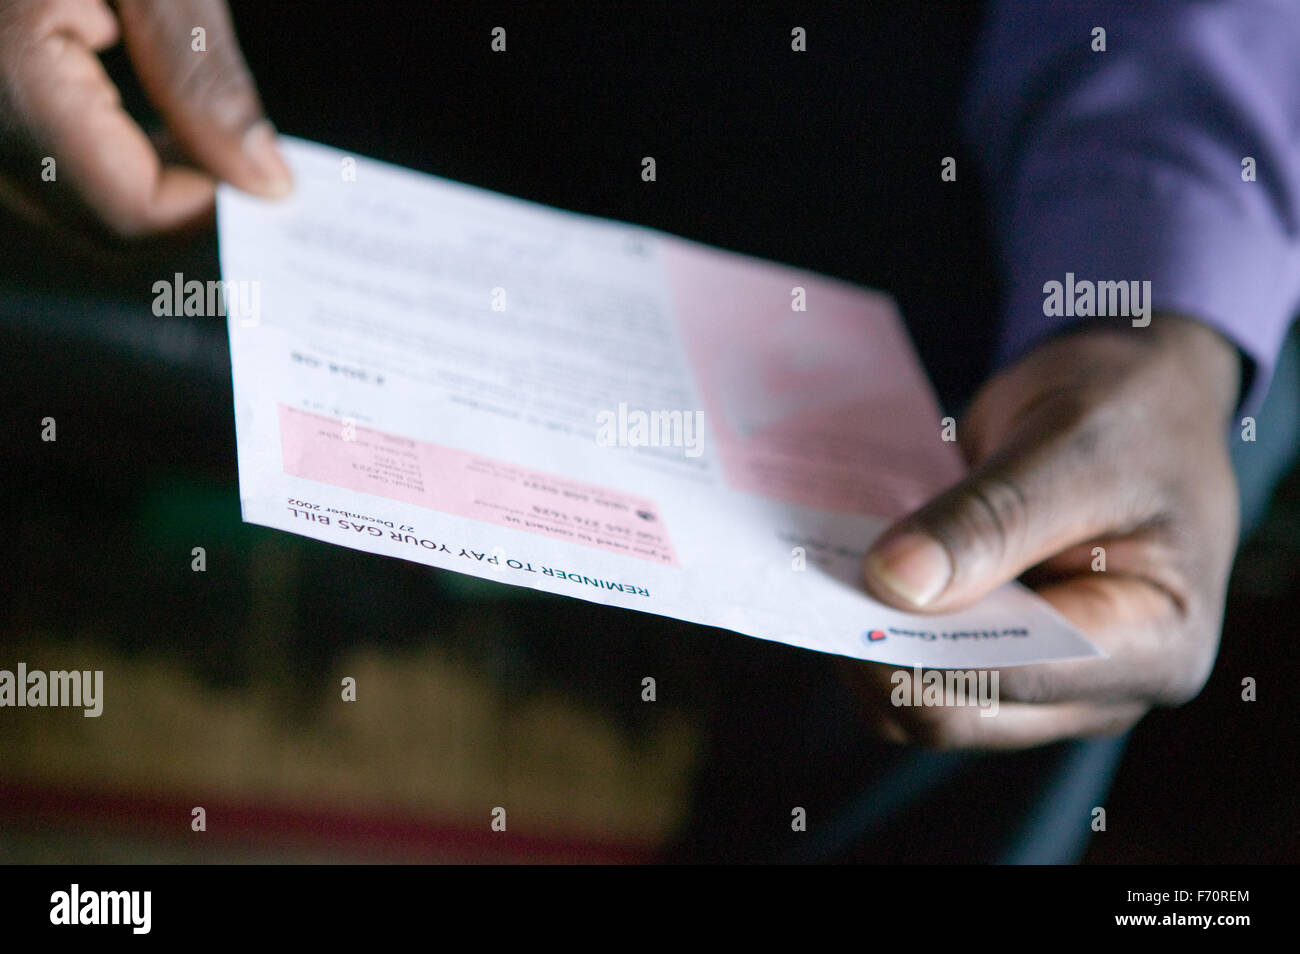 A household utility bill being read, - Stock Image